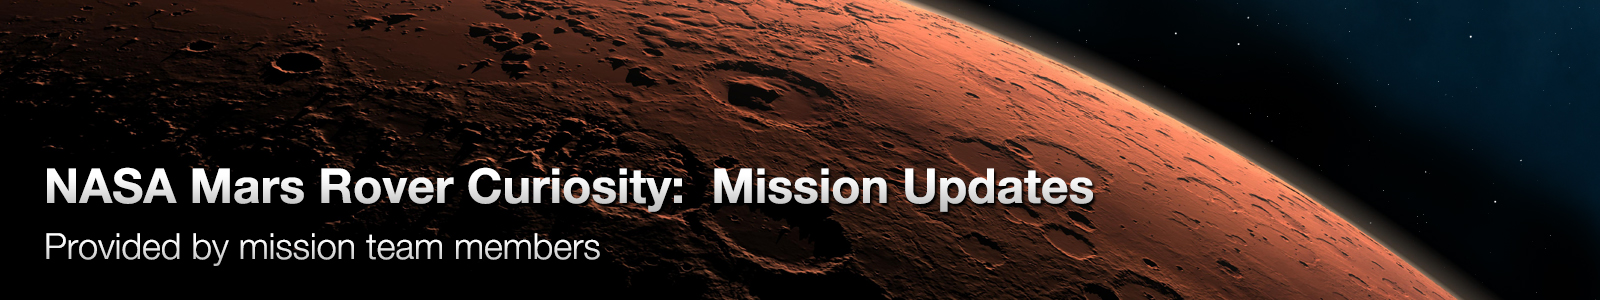 NASA Mars Rover Curiosity: Mission Updates